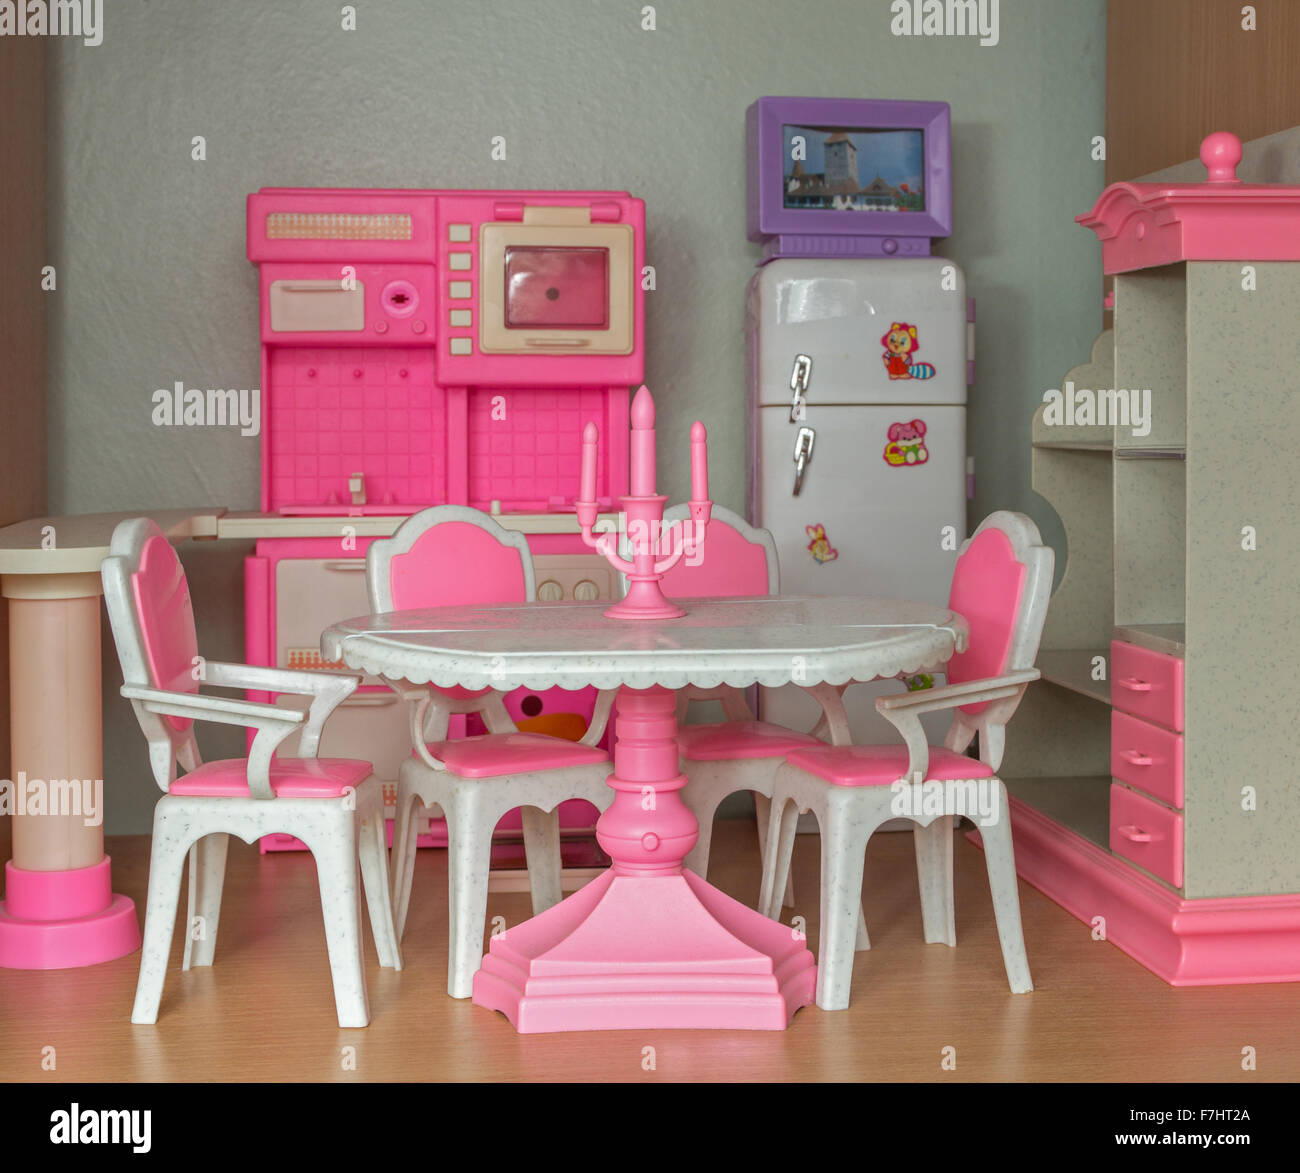 small pinc doll kitchen furniture and equipment Stock Photo ... on kitchen dining contemporary, kitchen backyard ideas, kitchen dining cabinets, kitchen tv room ideas, kitchen storage room ideas, kitchen breakfast counter ideas, kitchen library ideas, kitchen dining fireplace, kitchen under stairs ideas, kitchen wall space ideas, kitchen mud room ideas, family room room ideas, kitchen dining garden, living room ideas, kitchen dining interior design, kitchen breakfast room ideas, kitchen staircase ideas, kitchen rugs ideas, kitchen dining home, kitchen back porch ideas,